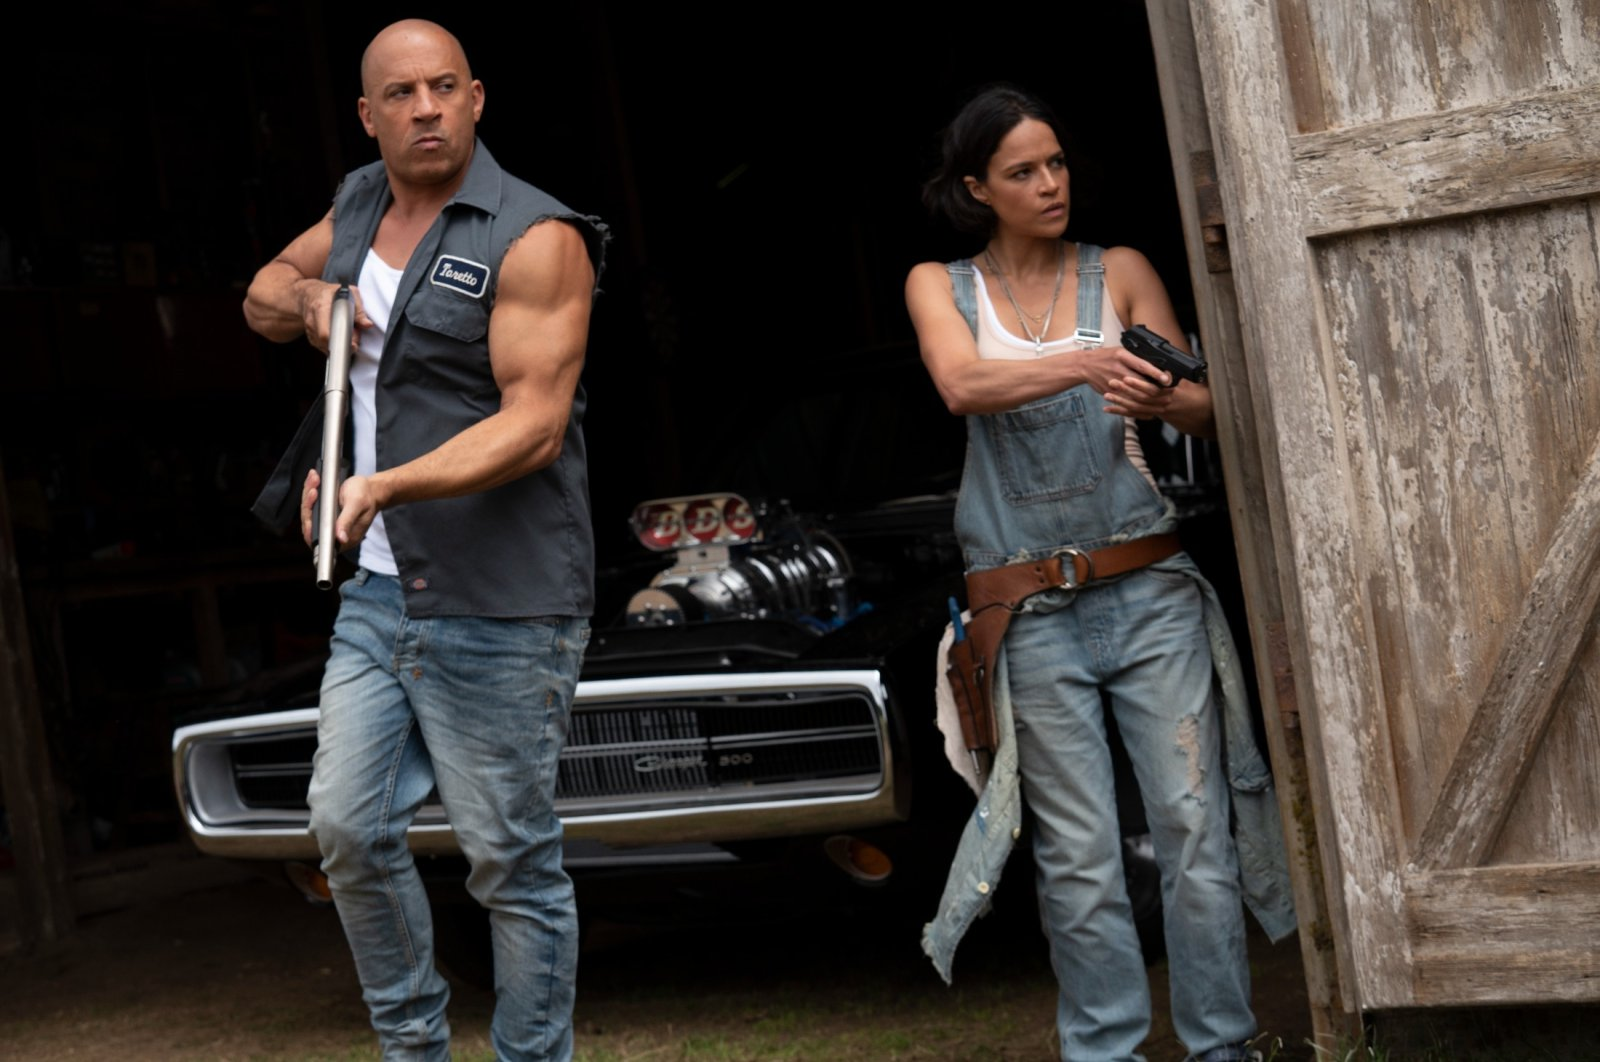 """Vin Diesel (L), and Michelle Rodriguez walk out of a barn holding weapons, in a scene from the movie""""F9: The Fast Saga."""" (Universal Pictures via AP)"""